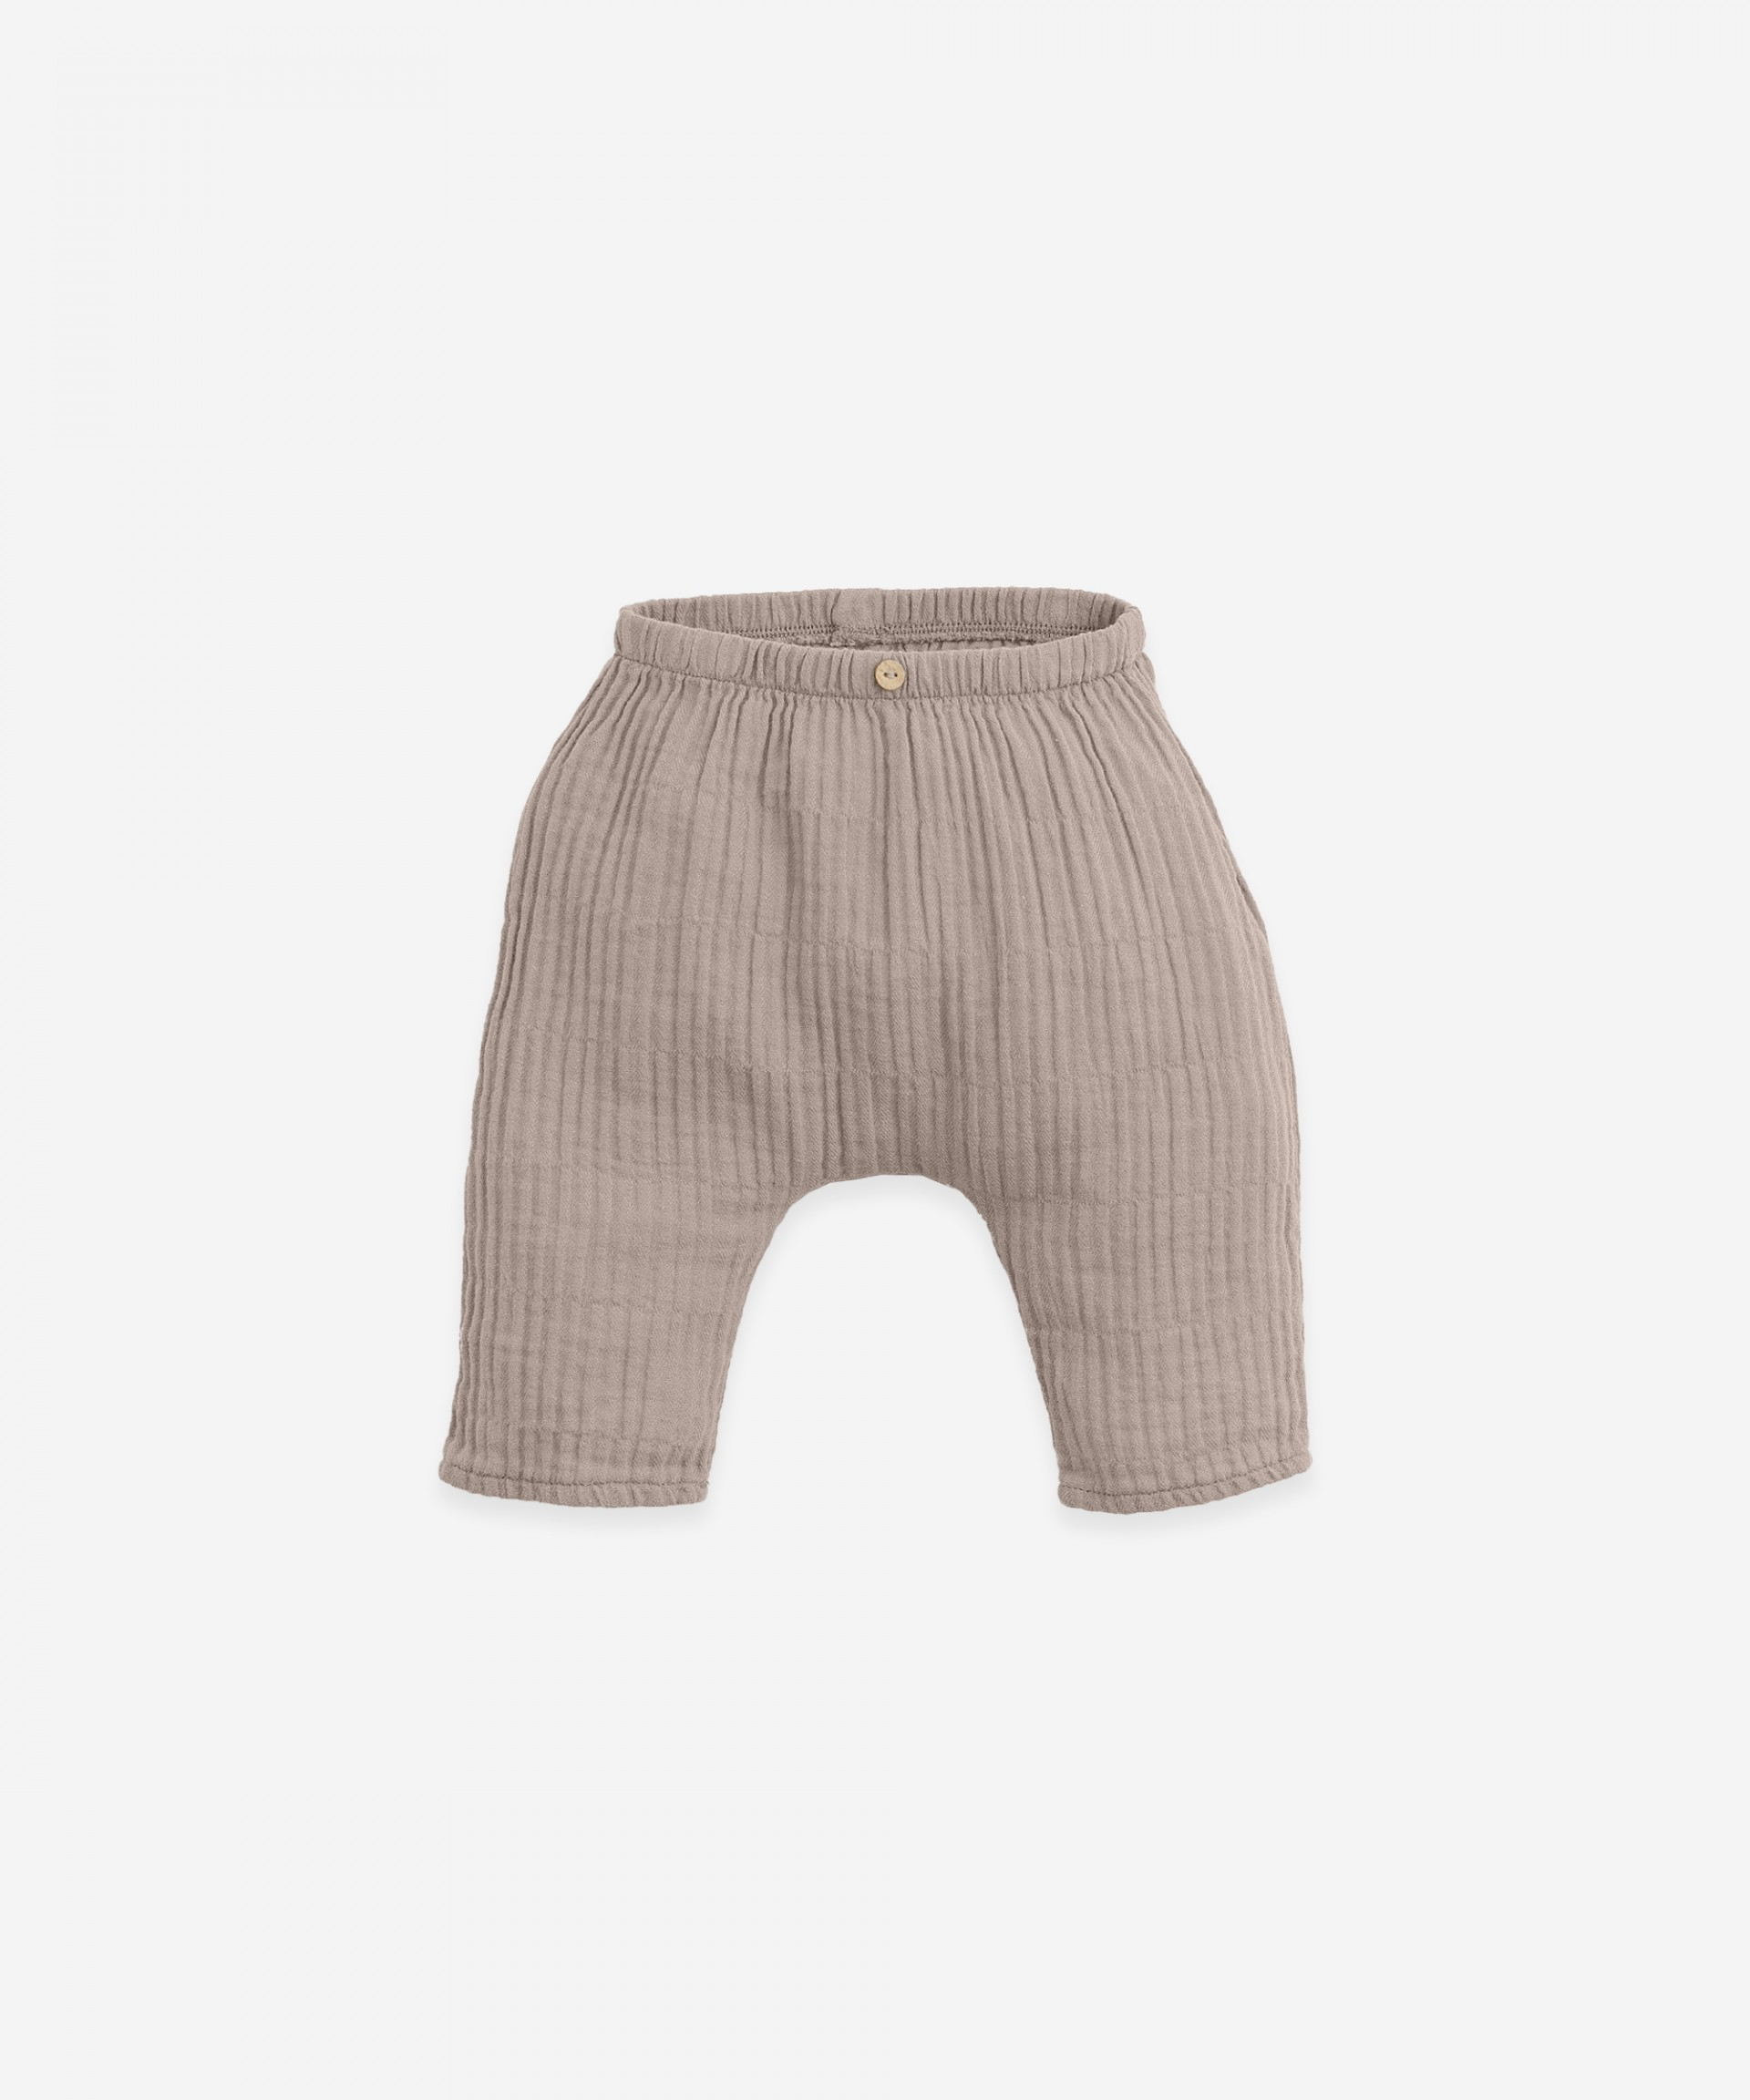 Woven trousers | Botany